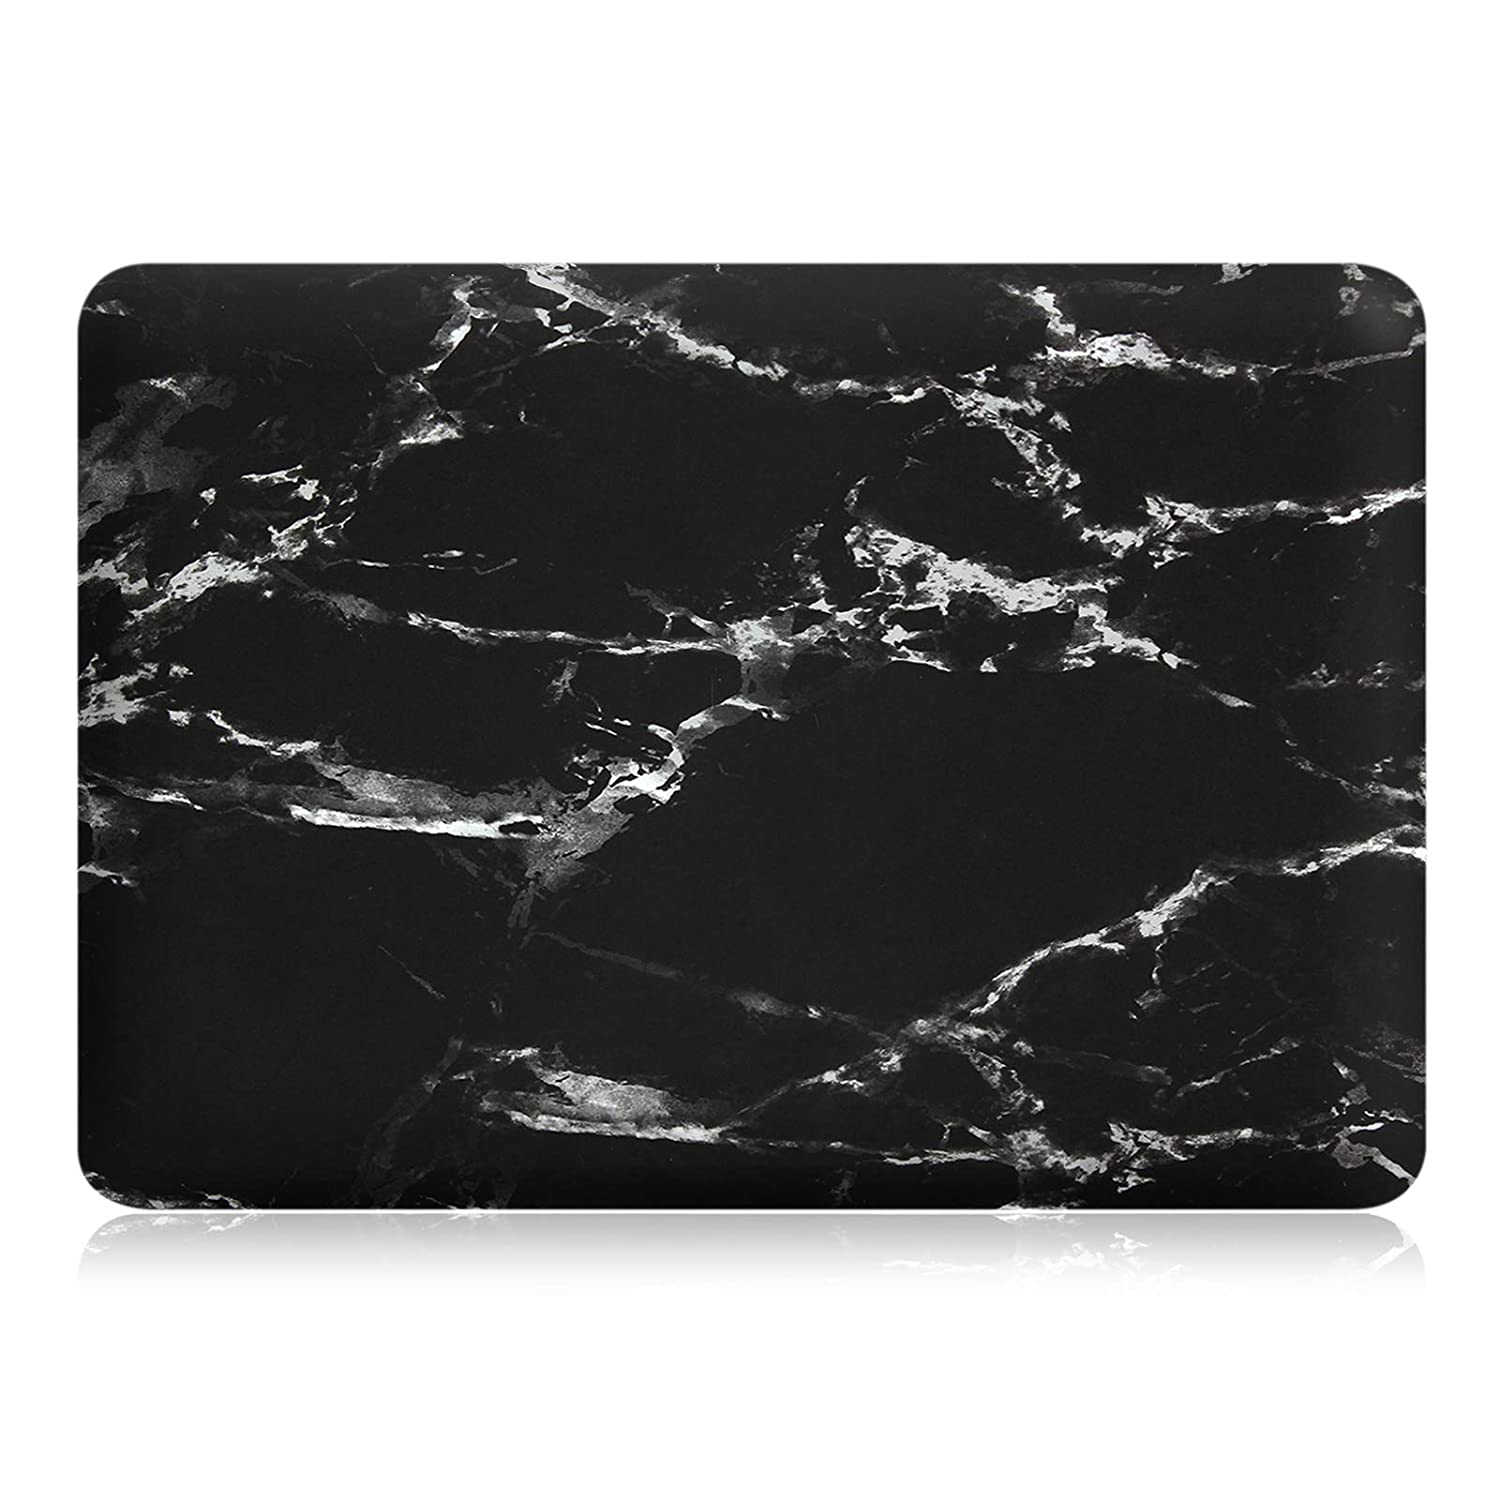 Non-Retina Model A1278 + Microfibre Cleaning Cloth UESWILL Smooth Soft-Touch Matte Hard Shell Case Cover for MacBook Pro 13 with CD-ROM Gray